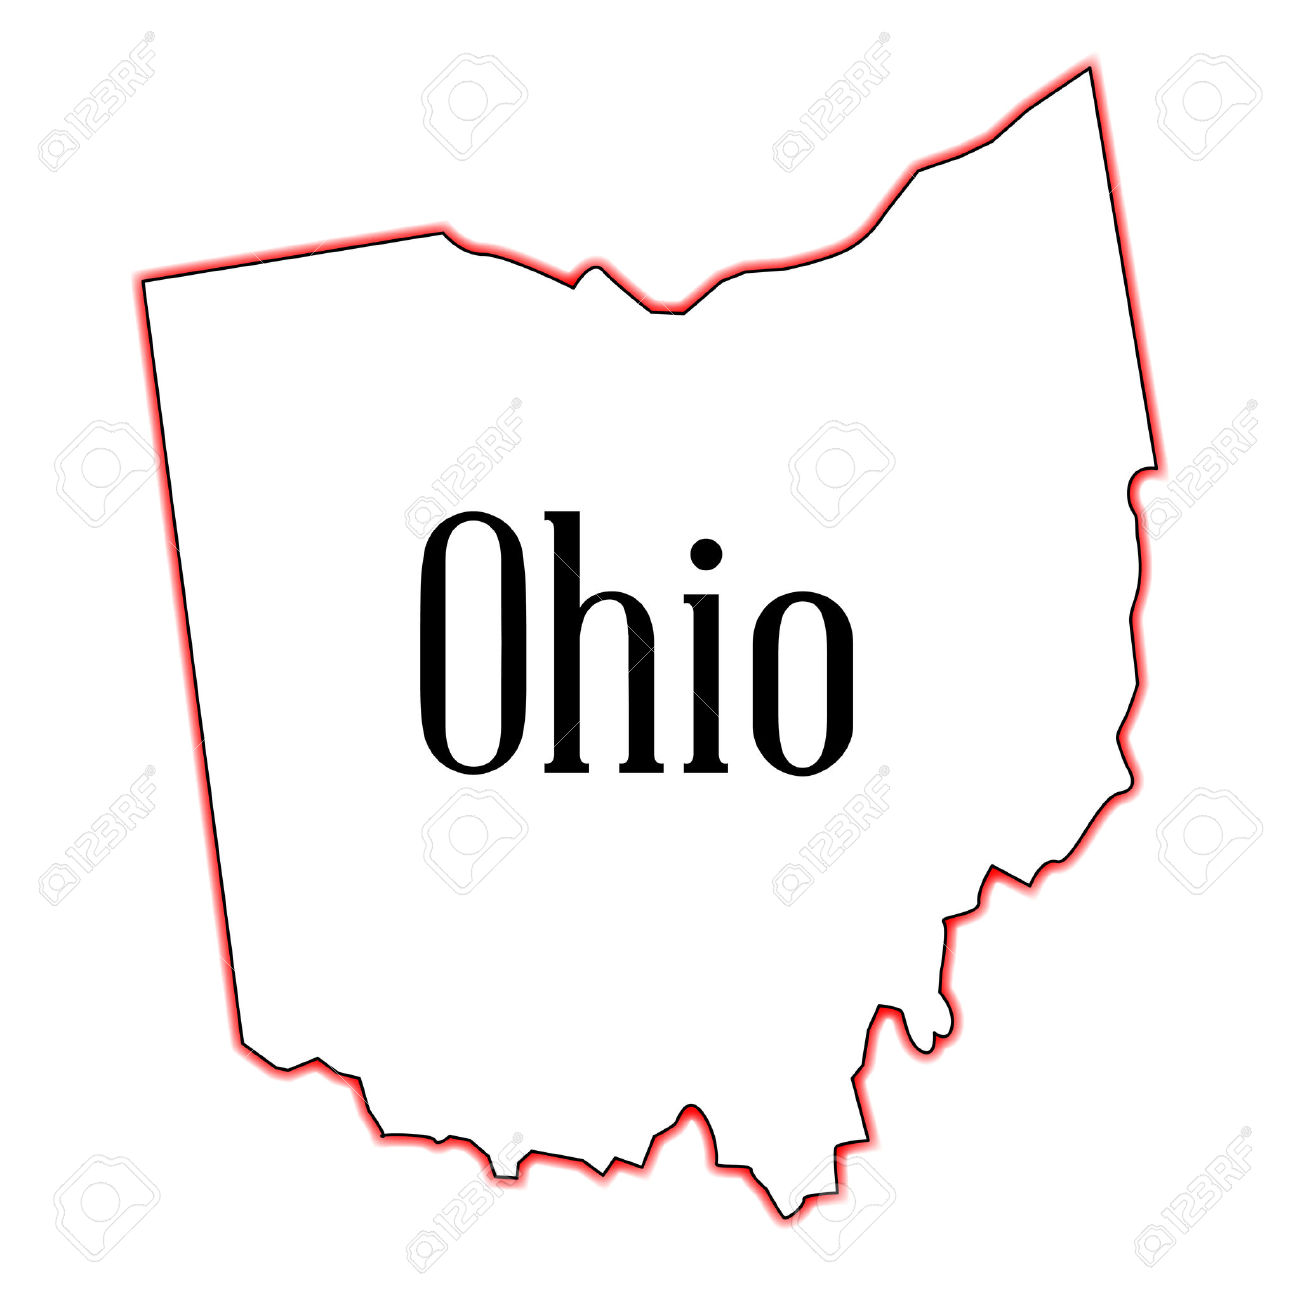 Ohio State Outline Clipart